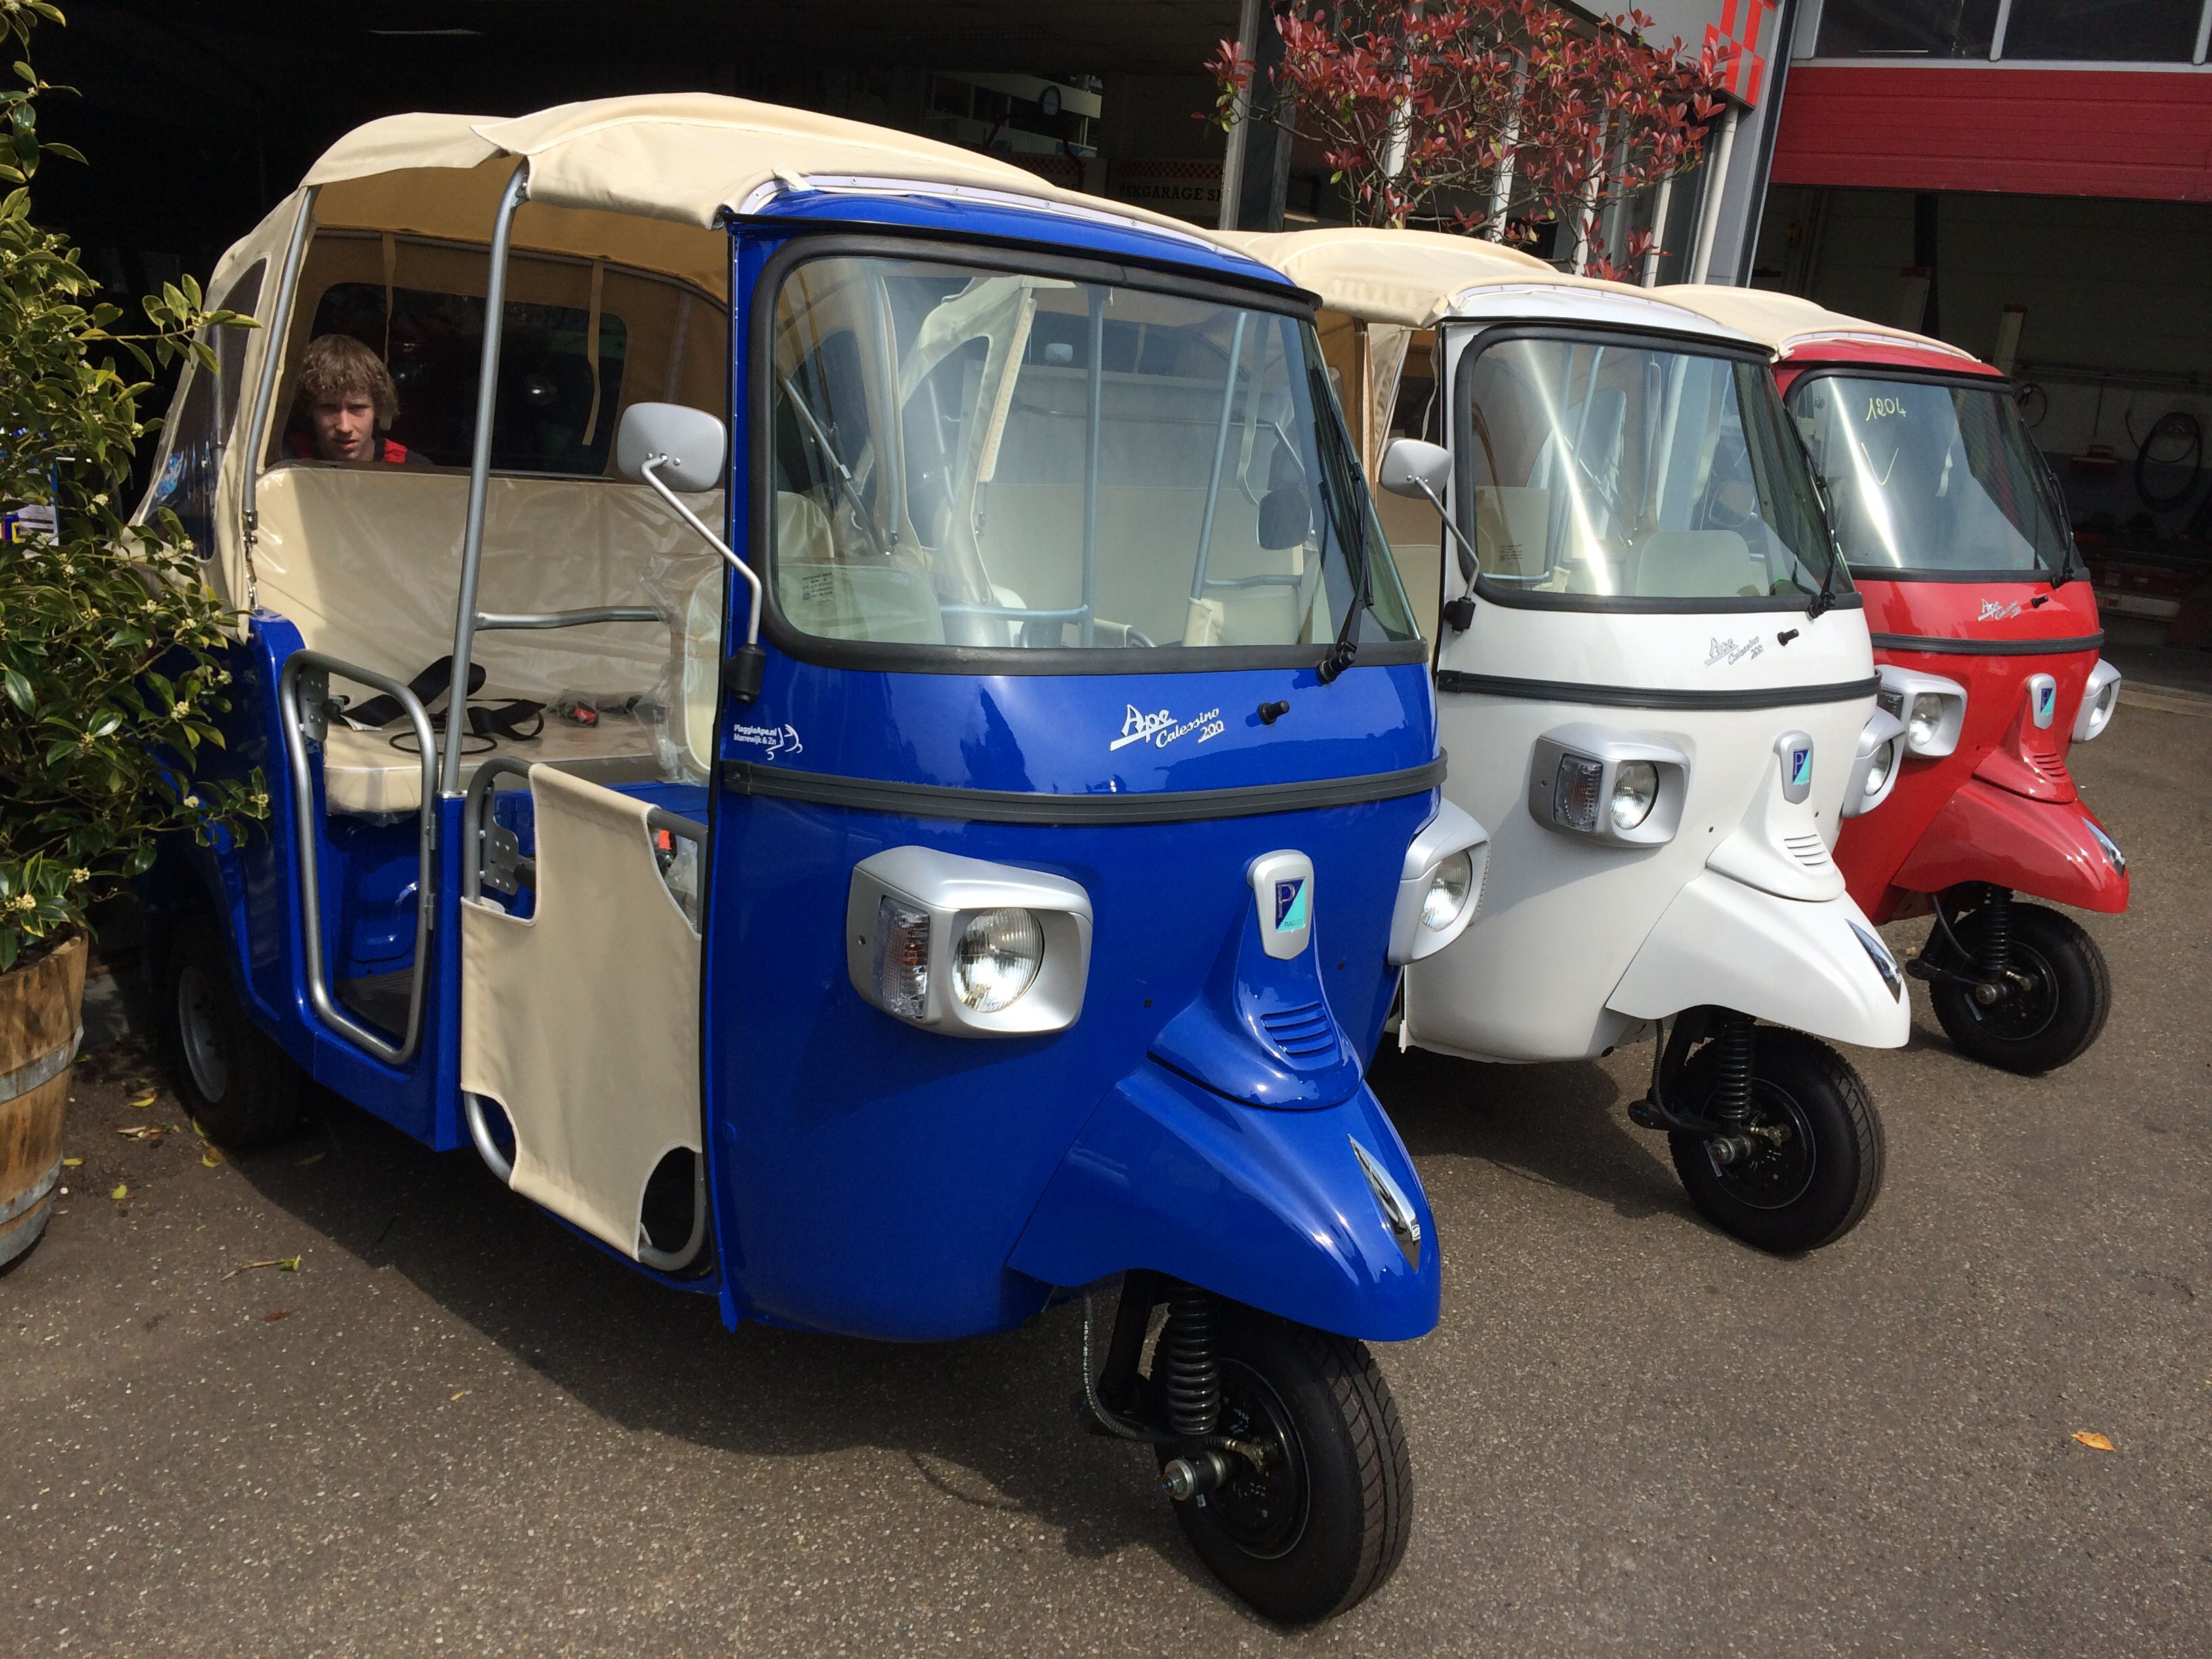 piaggio ape calessino 200 piaggio ape calessino. Black Bedroom Furniture Sets. Home Design Ideas